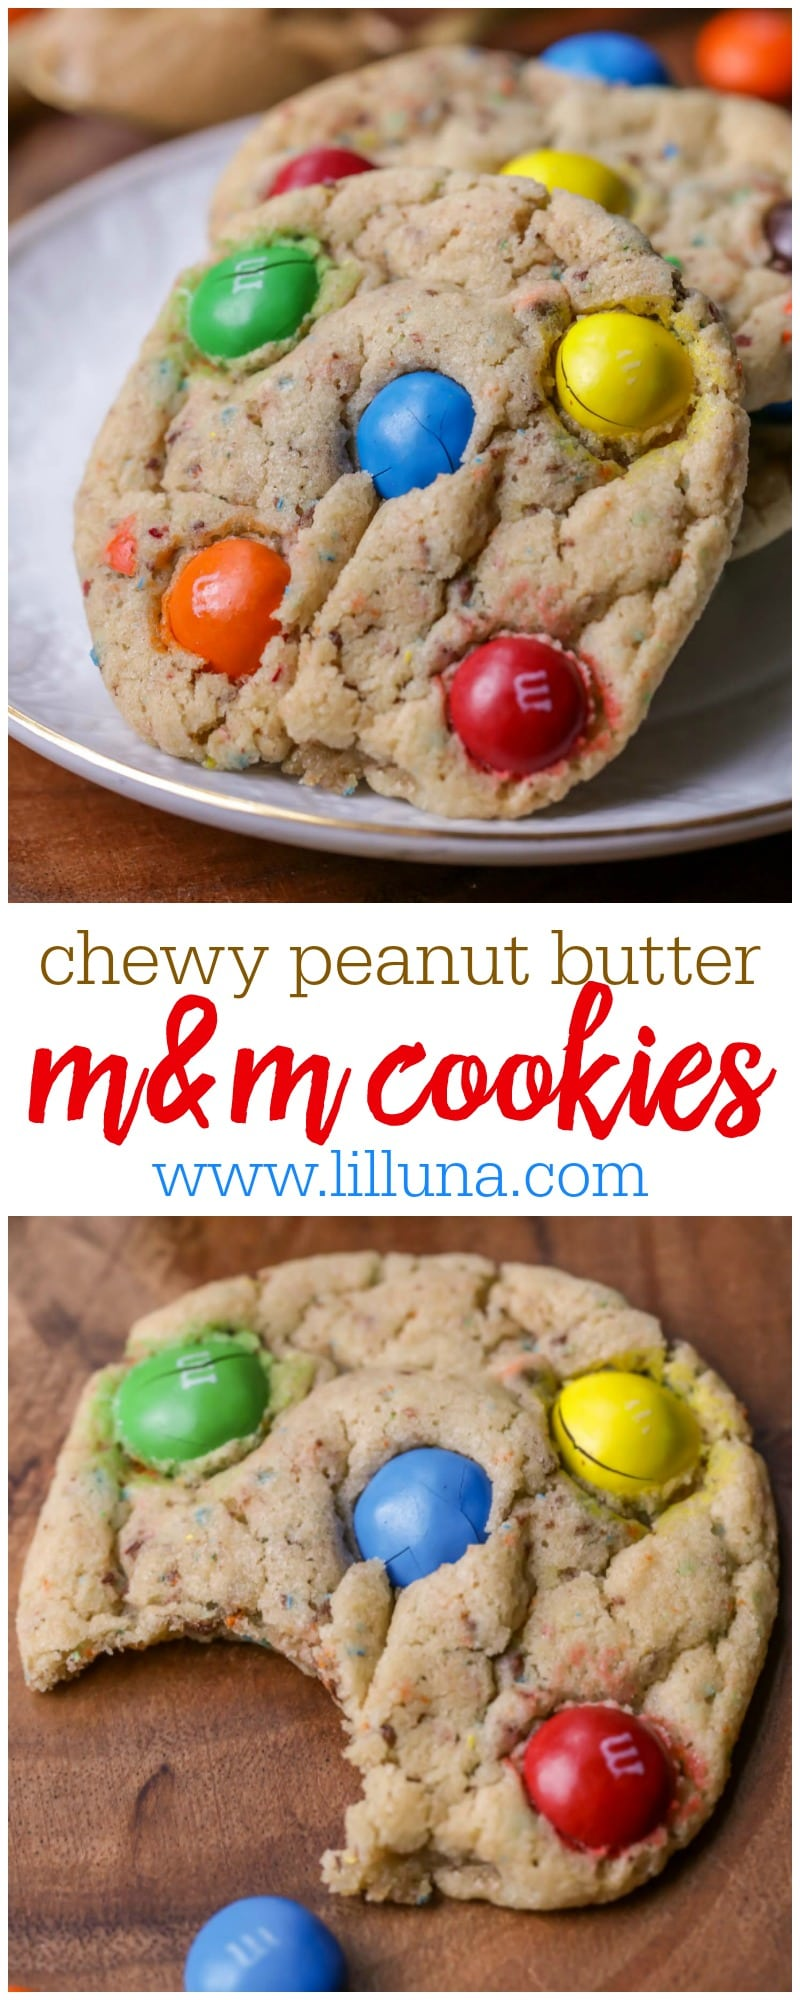 Chewy Peanut Butter M&M Cookies - chunks of M&Ms through out and on top of these delicious peanut butter cookies make them irresistible!